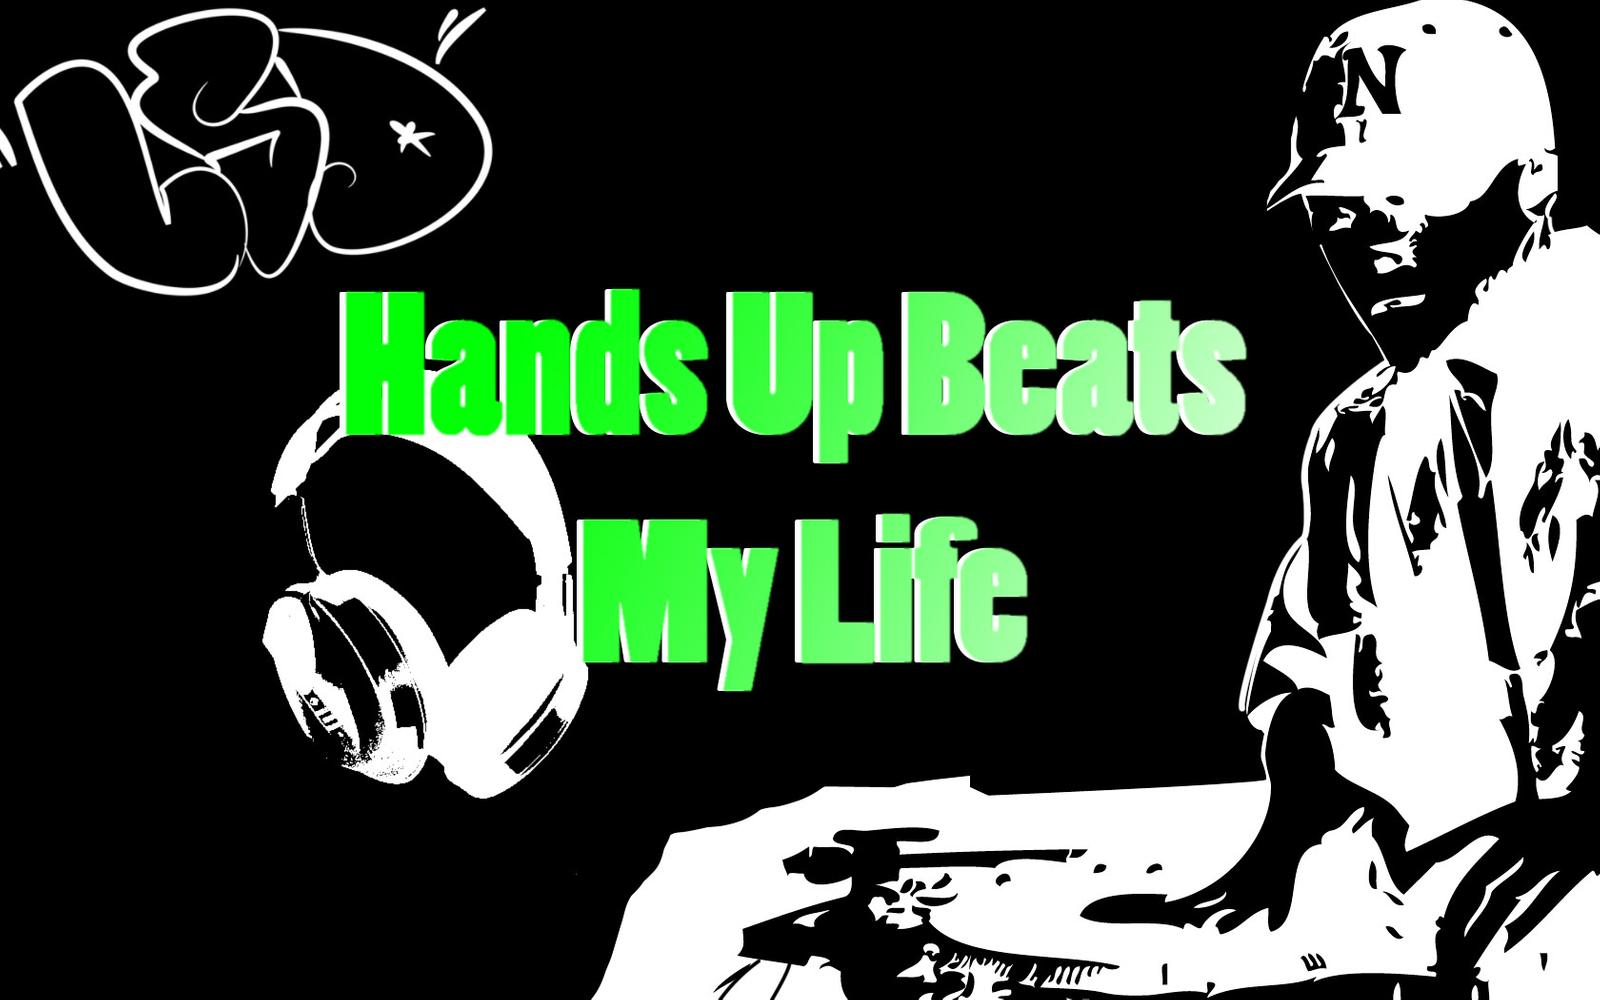 Hands_Up_wallpaper_2_by_Psymon75.jpg